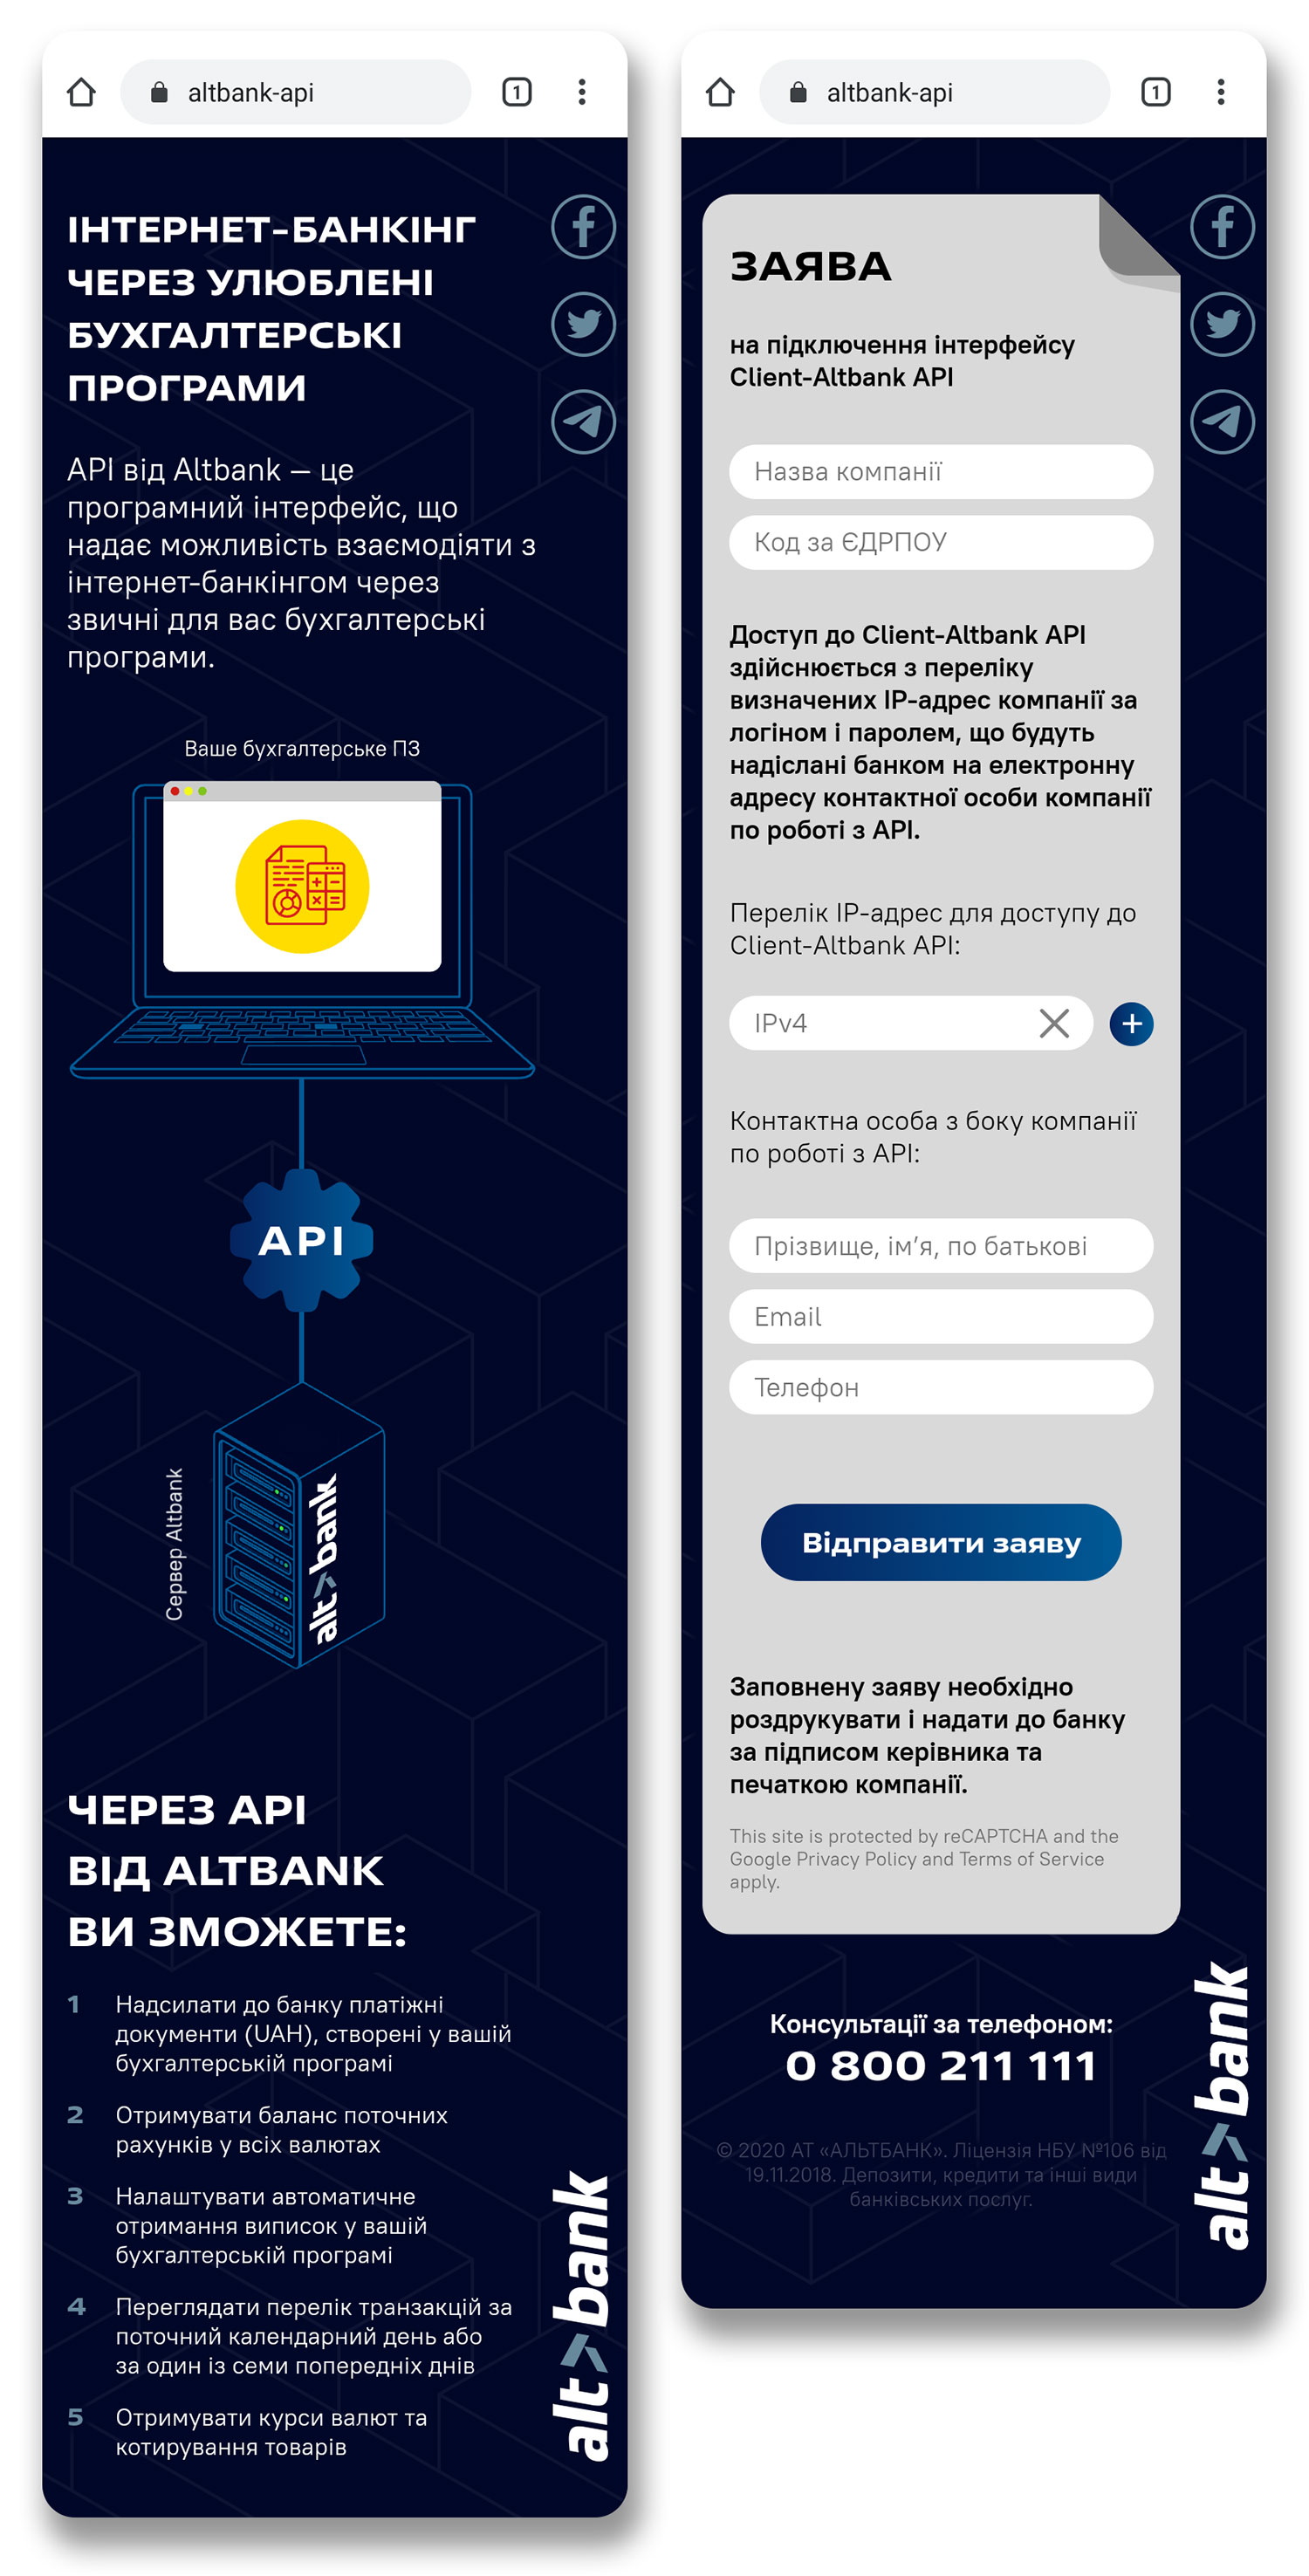 Online application for Altbank API connection, mobile version. Online application form.